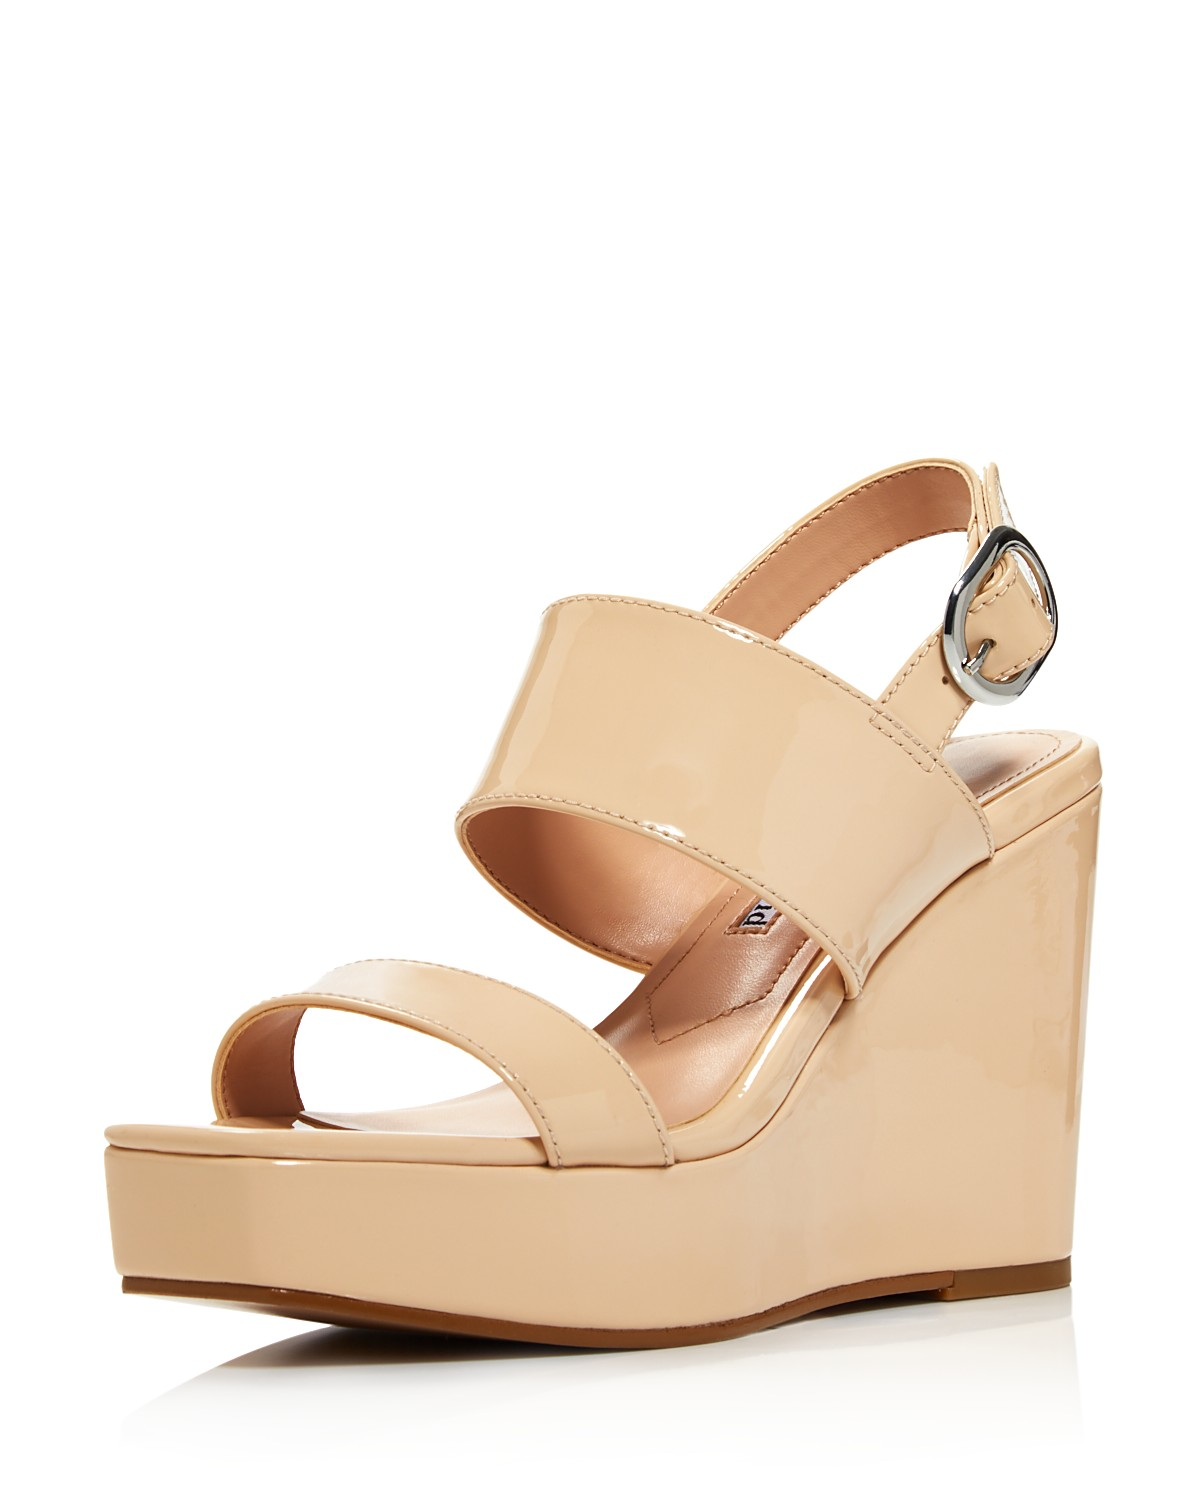 free shipping outlet locations buy cheap choice Charles by Charles David Leather Slide Wedges affordable sale online cheap price outlet 8NMR6MpE